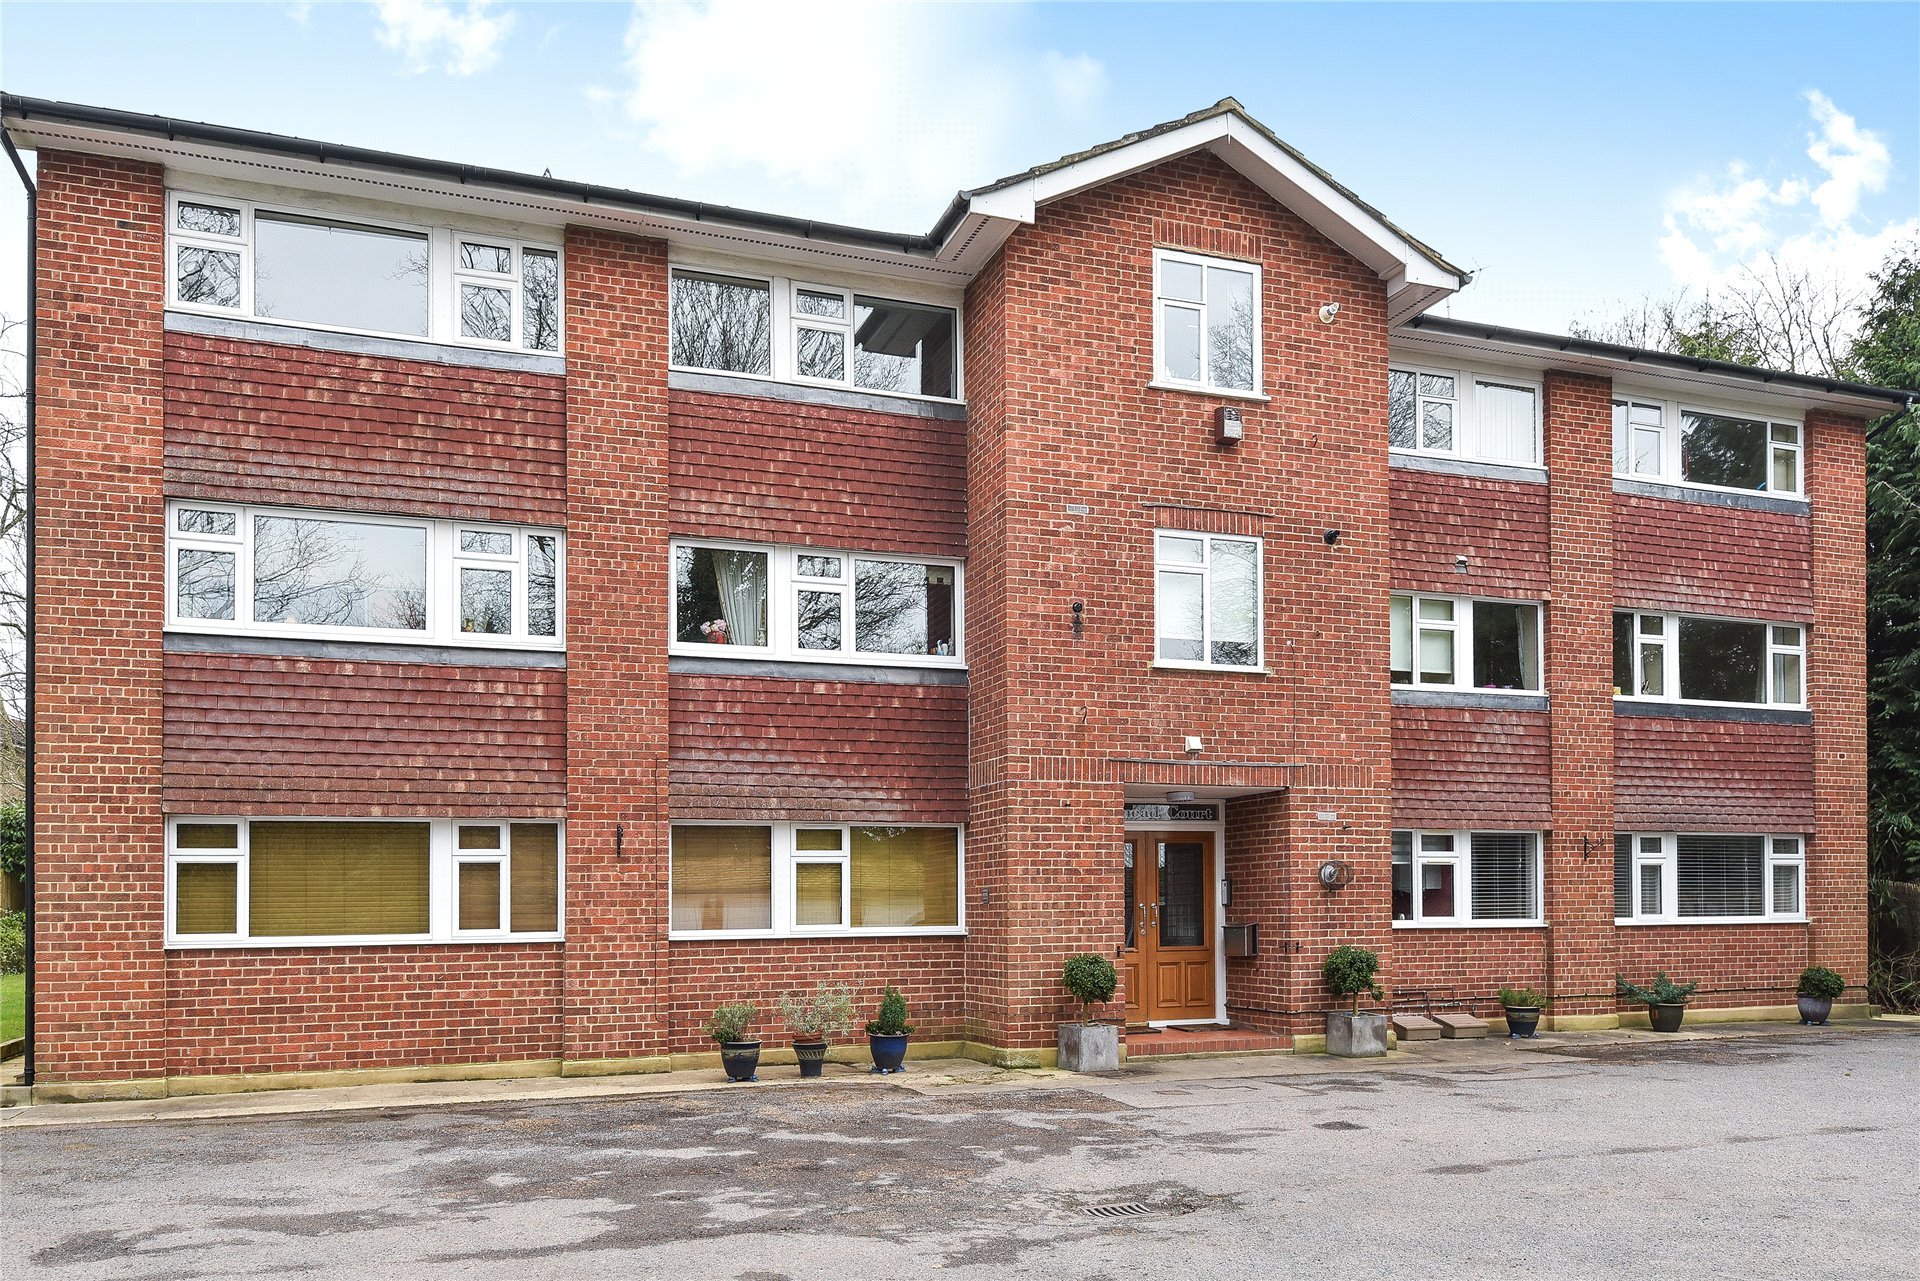 2 Bedrooms Apartment Flat for rent in Fairmead Court, Gordon Crescent, Camberley, Surrey, GU15